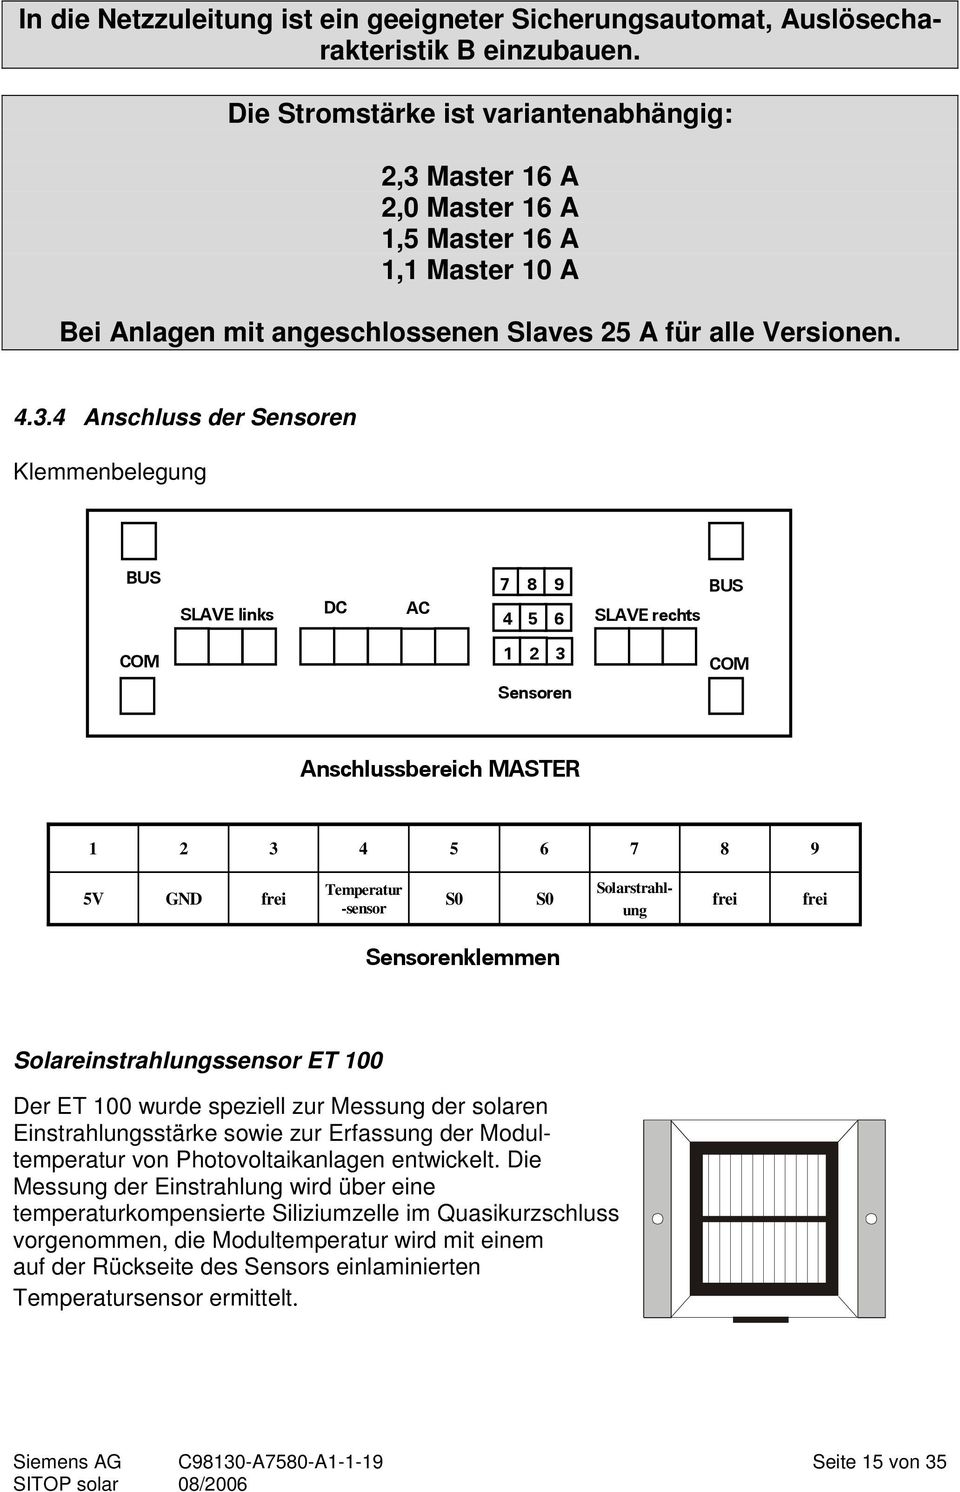 Allgemeines. Siemens AG 2006 All rights reserved - PDF